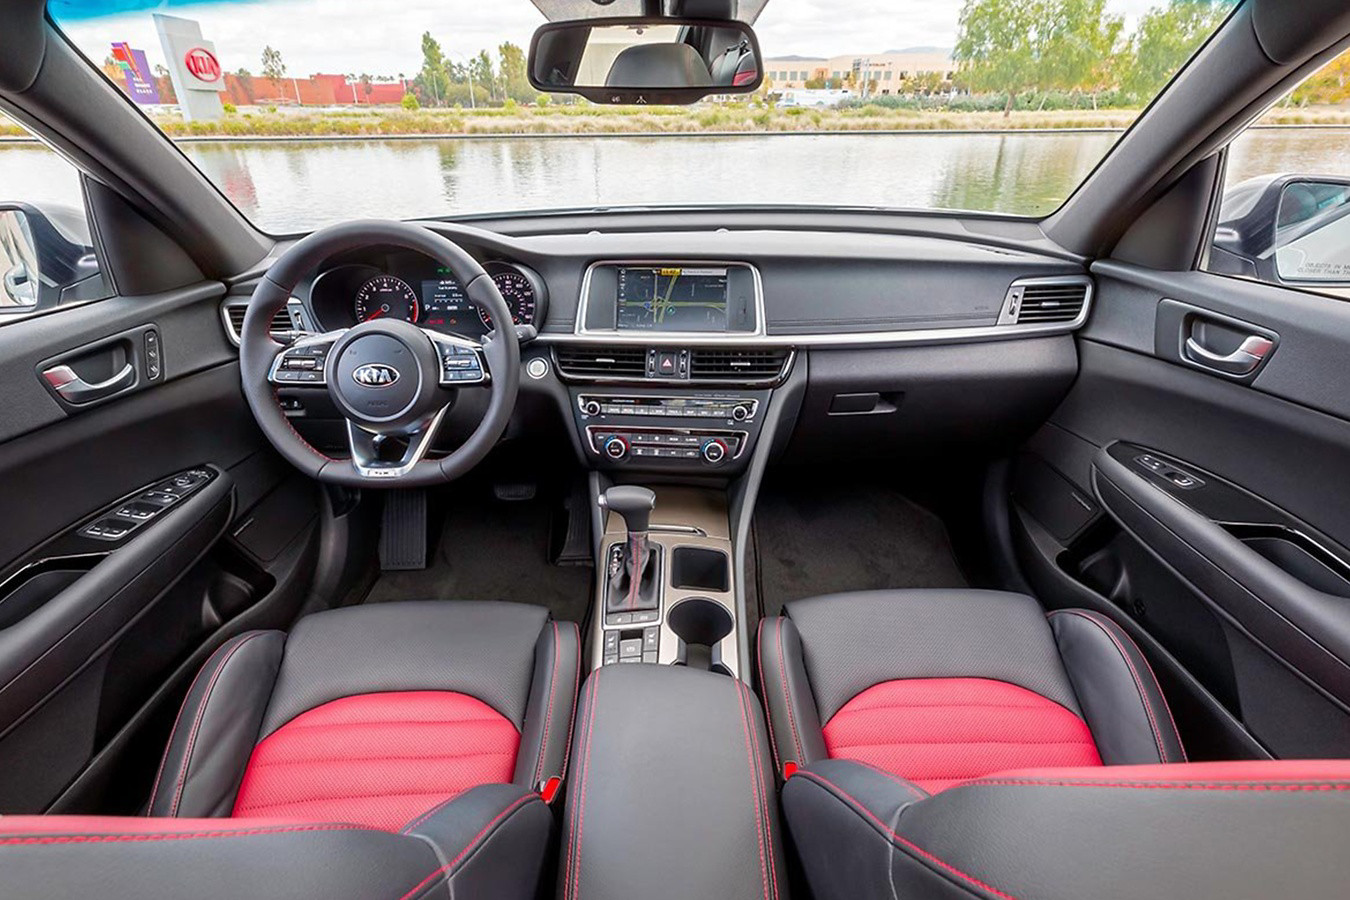 2020 Kia Optima Cockpit